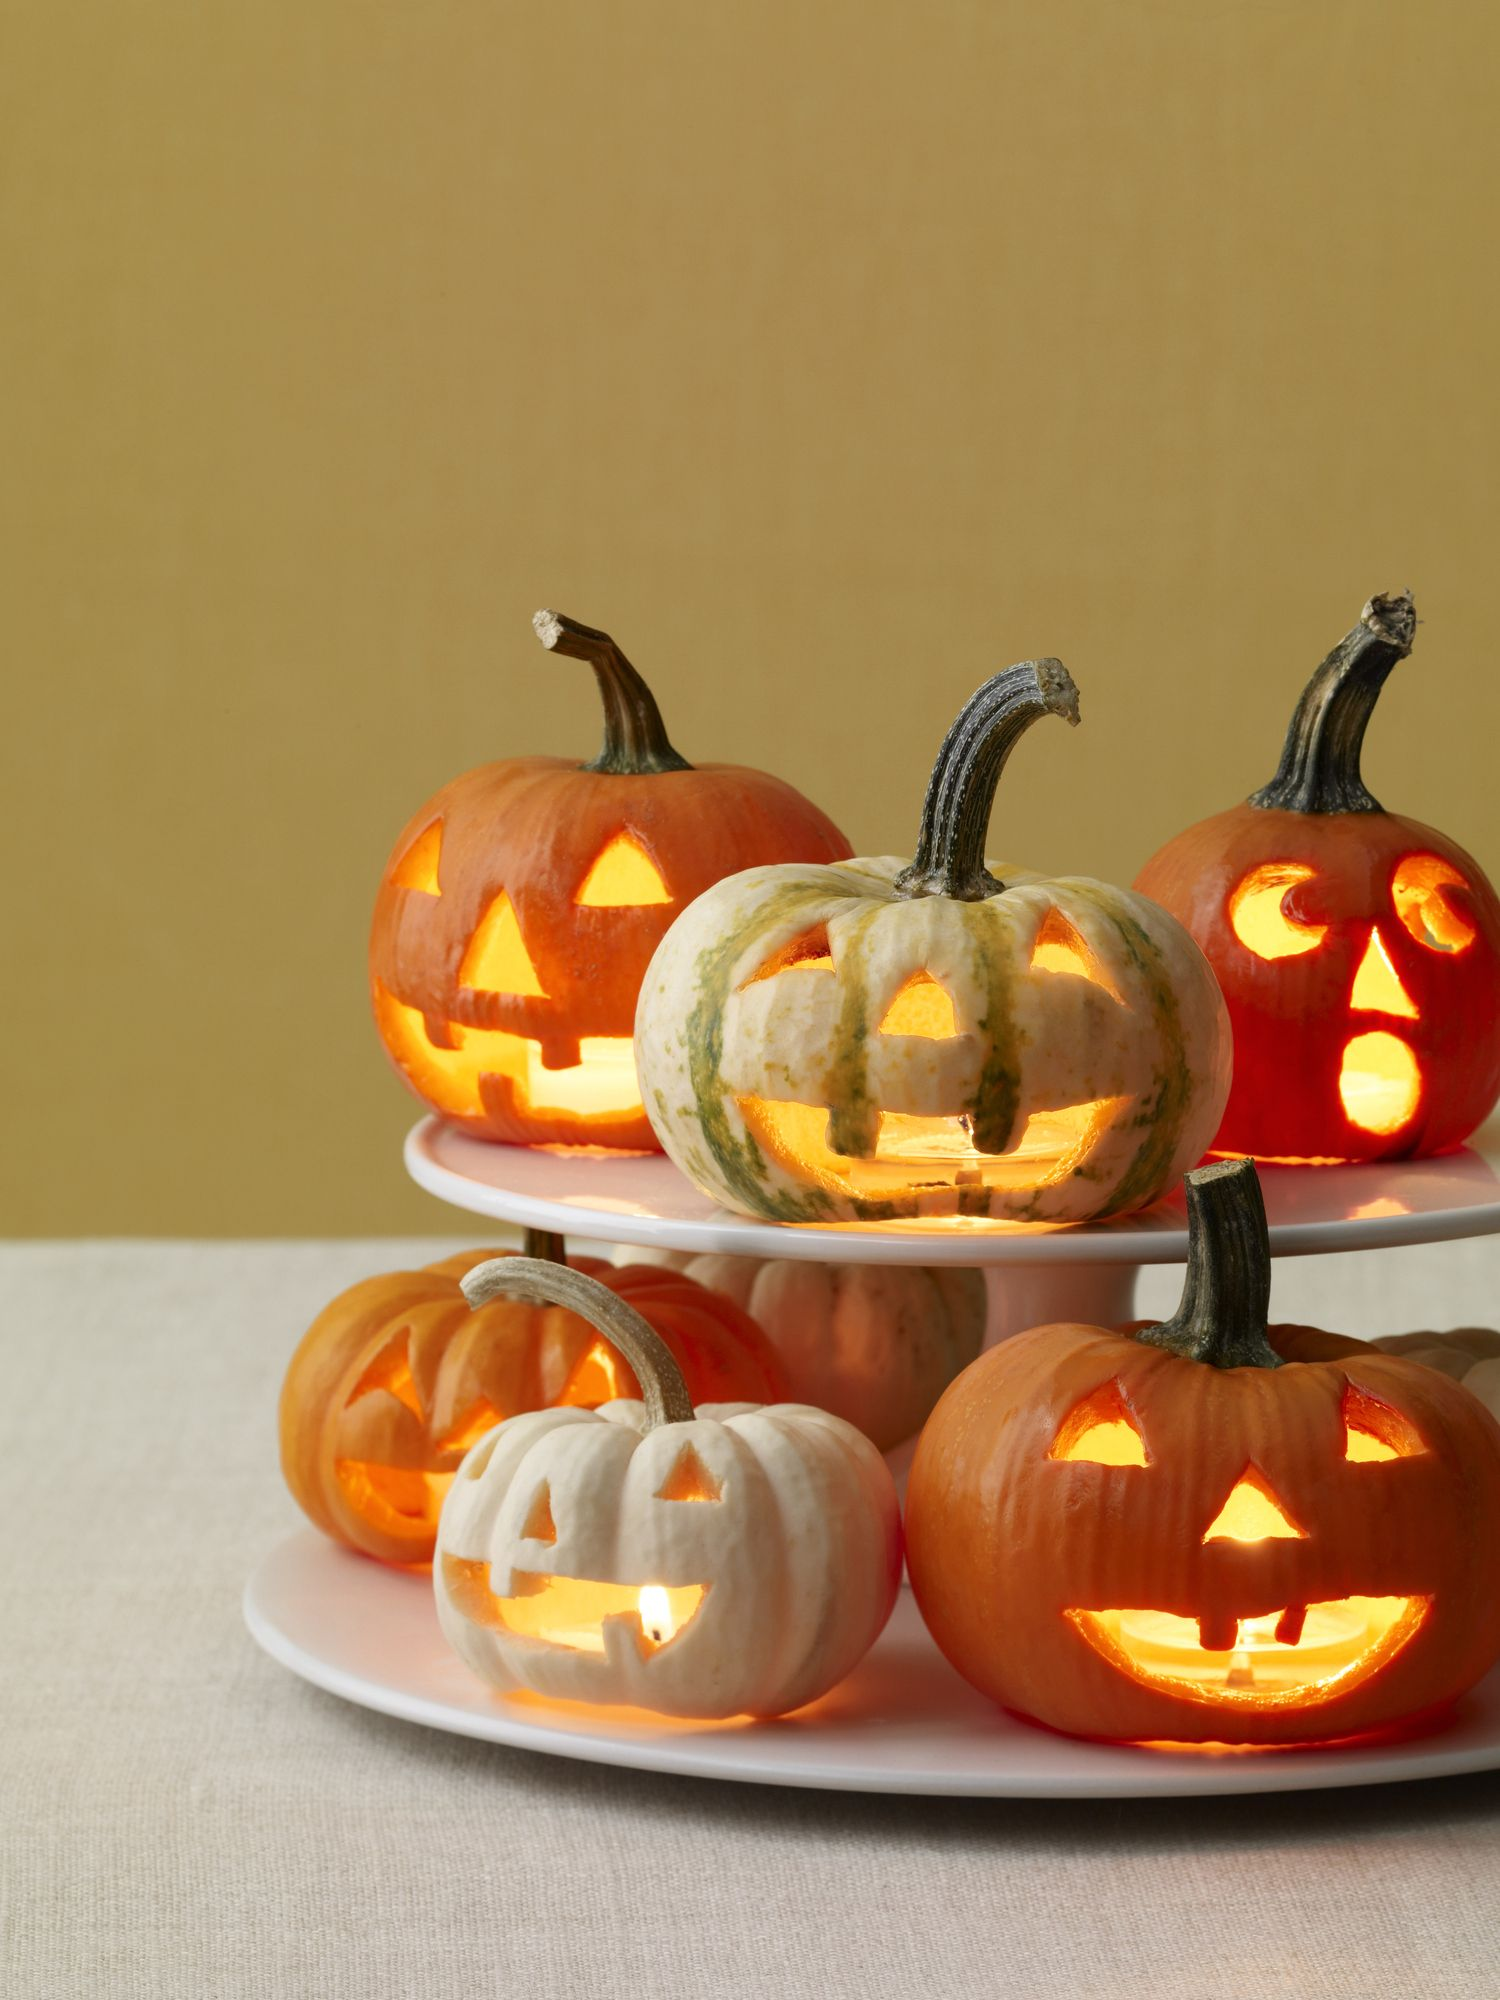 10 Cool Pumpkin Carving Ideas for Halloween 2017 , Easy Ways